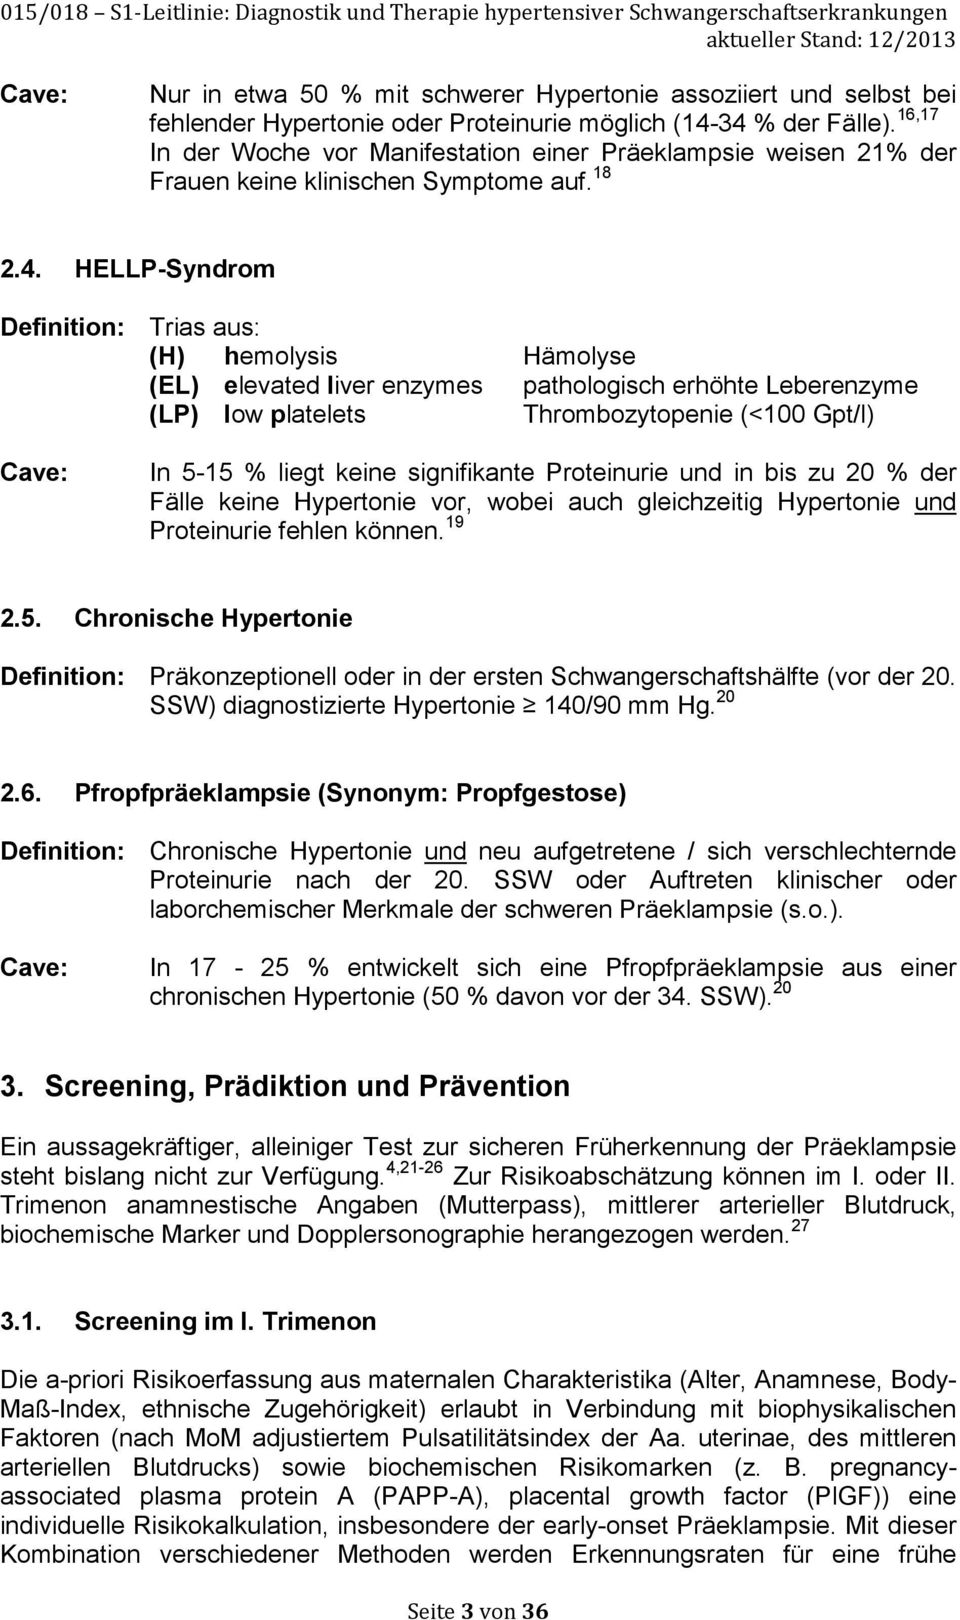 HELLP-Syndrom Definition: Cave: Trias aus: (H) hemolysis Hämolyse (EL) elevated liver enzymes pathologisch erhöhte Leberenzyme (LP) low platelets Thrombozytopenie (<100 Gpt/l) In 5-15 % liegt keine